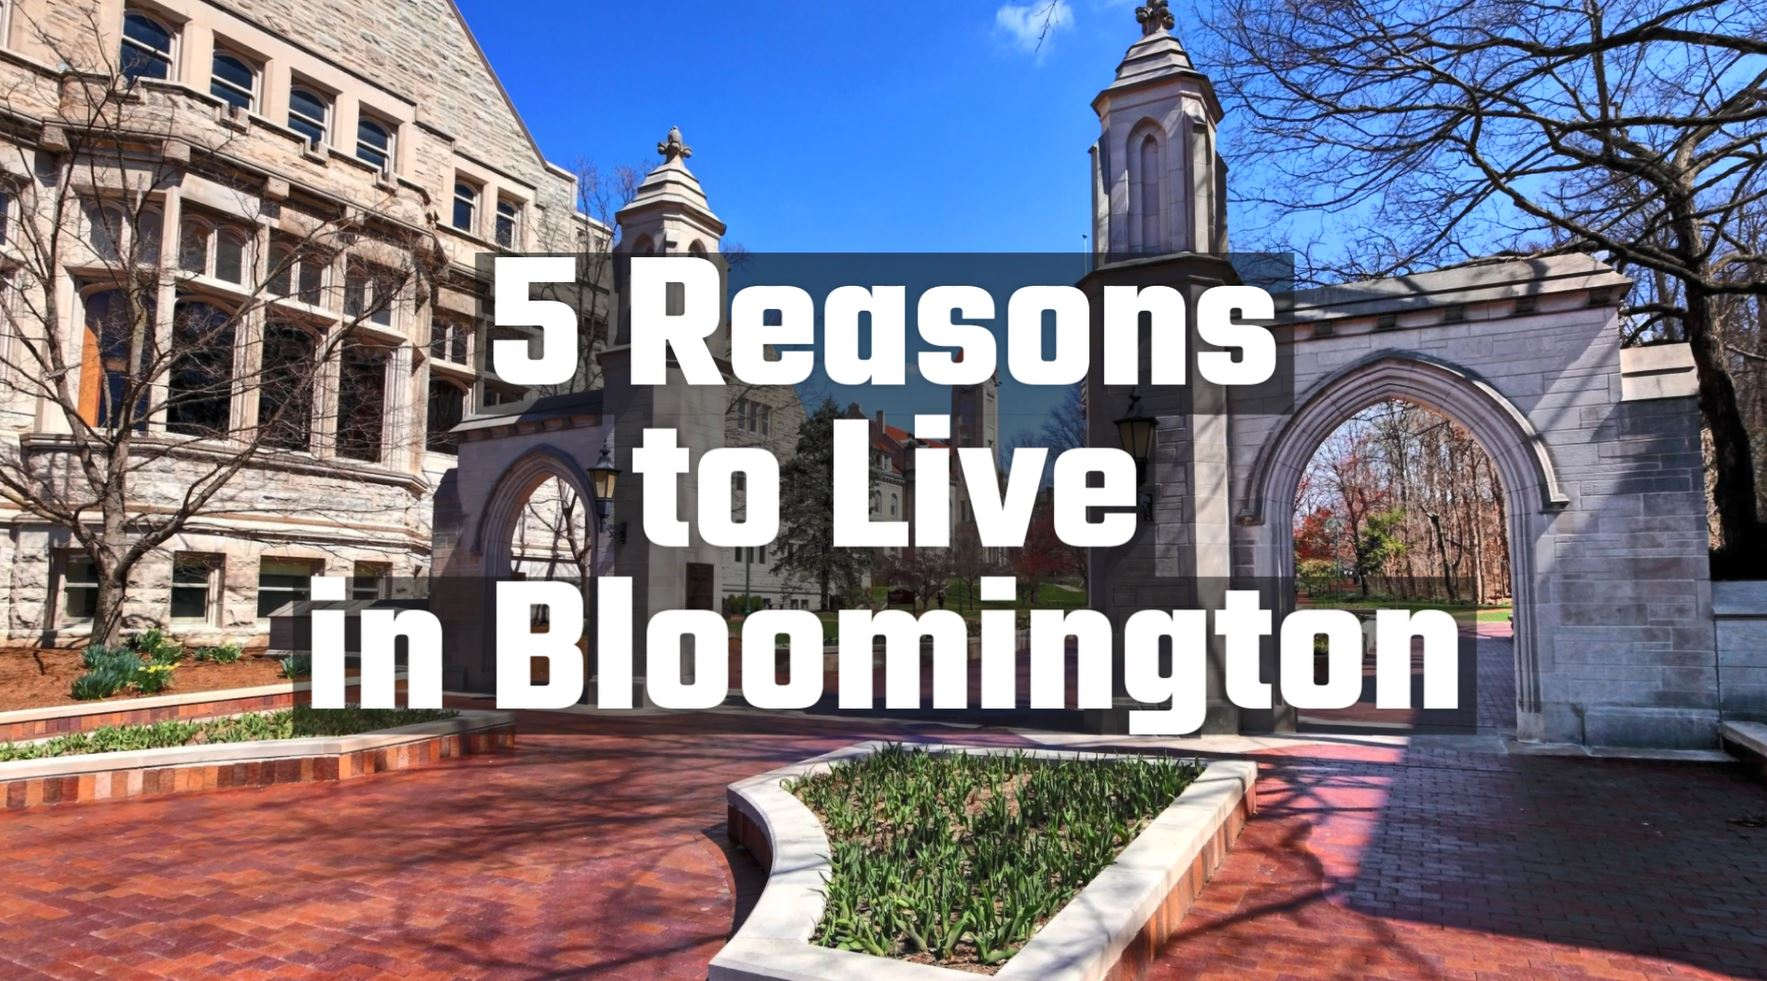 5_Reasons_to_Live_in_Bloomington_1080p - Final